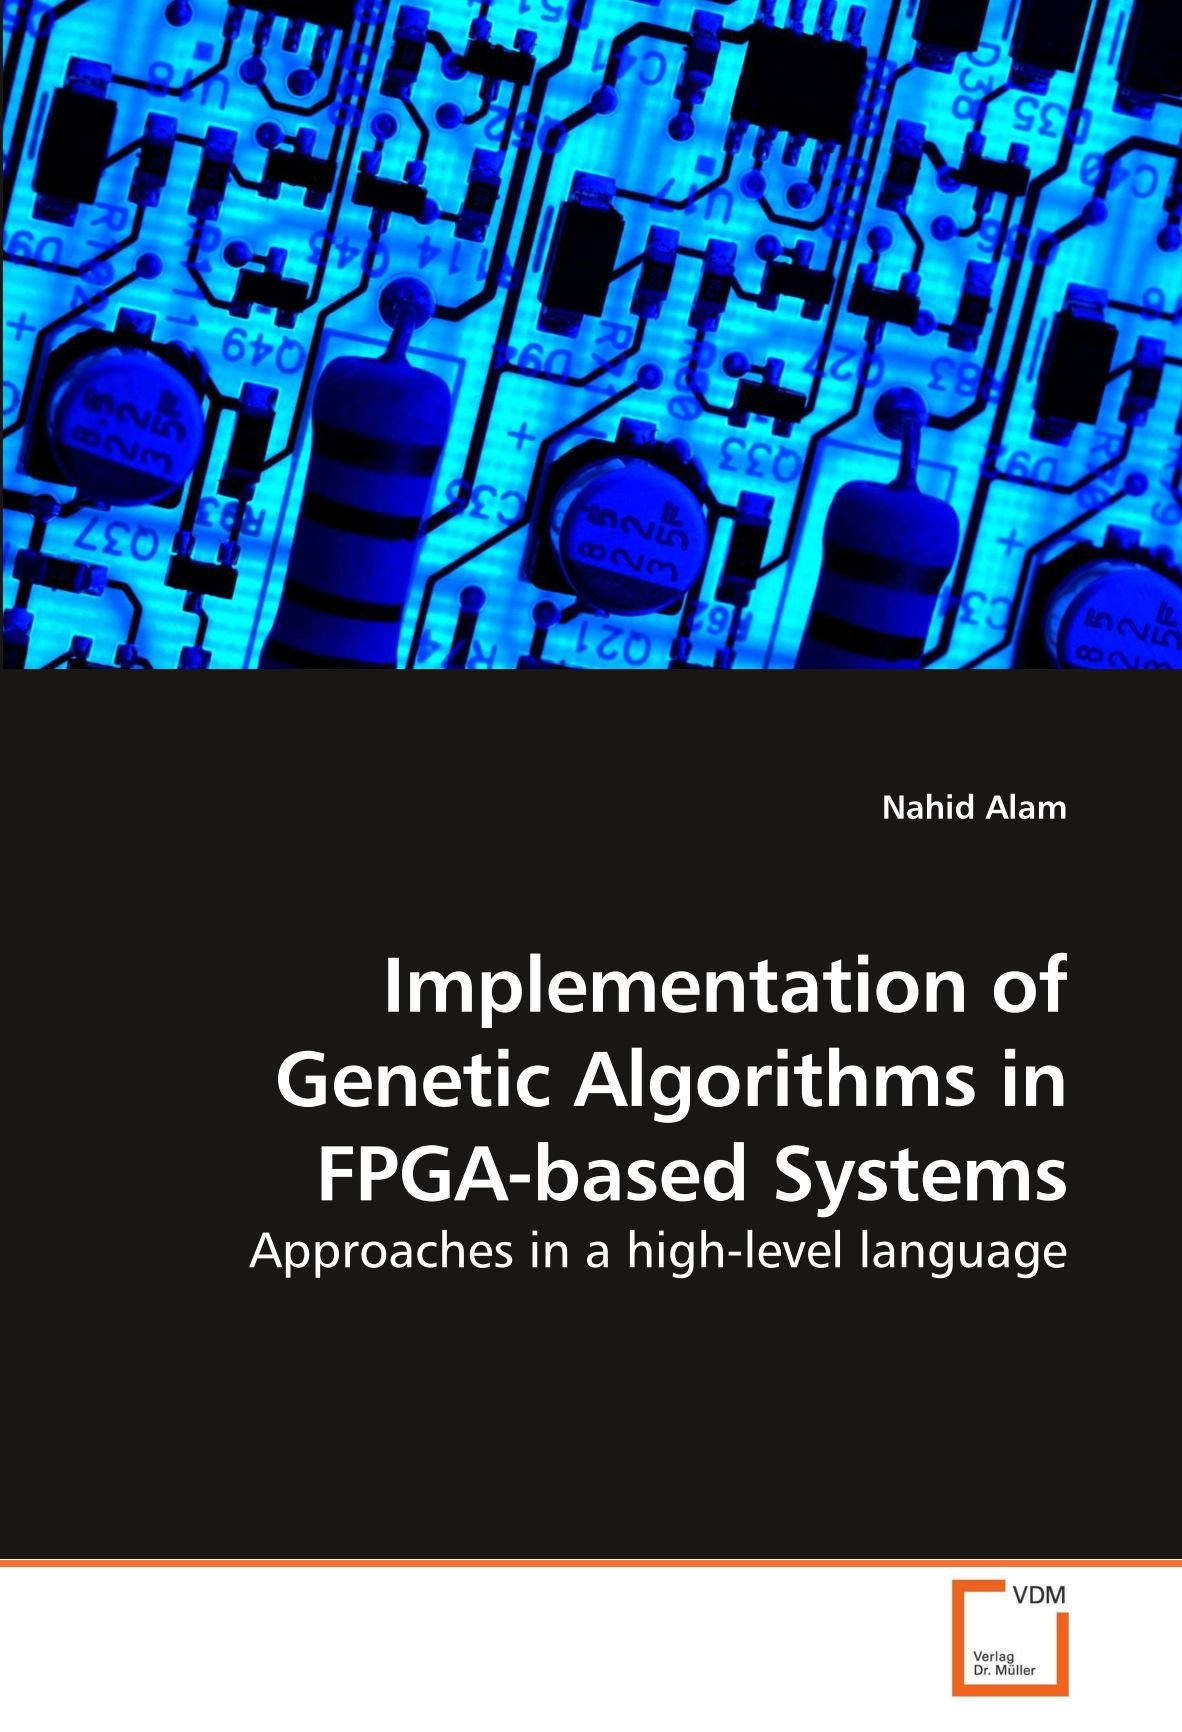 Implementation of Genetic Algorithms in FPGA-based Systems: Approaches in a high-level language